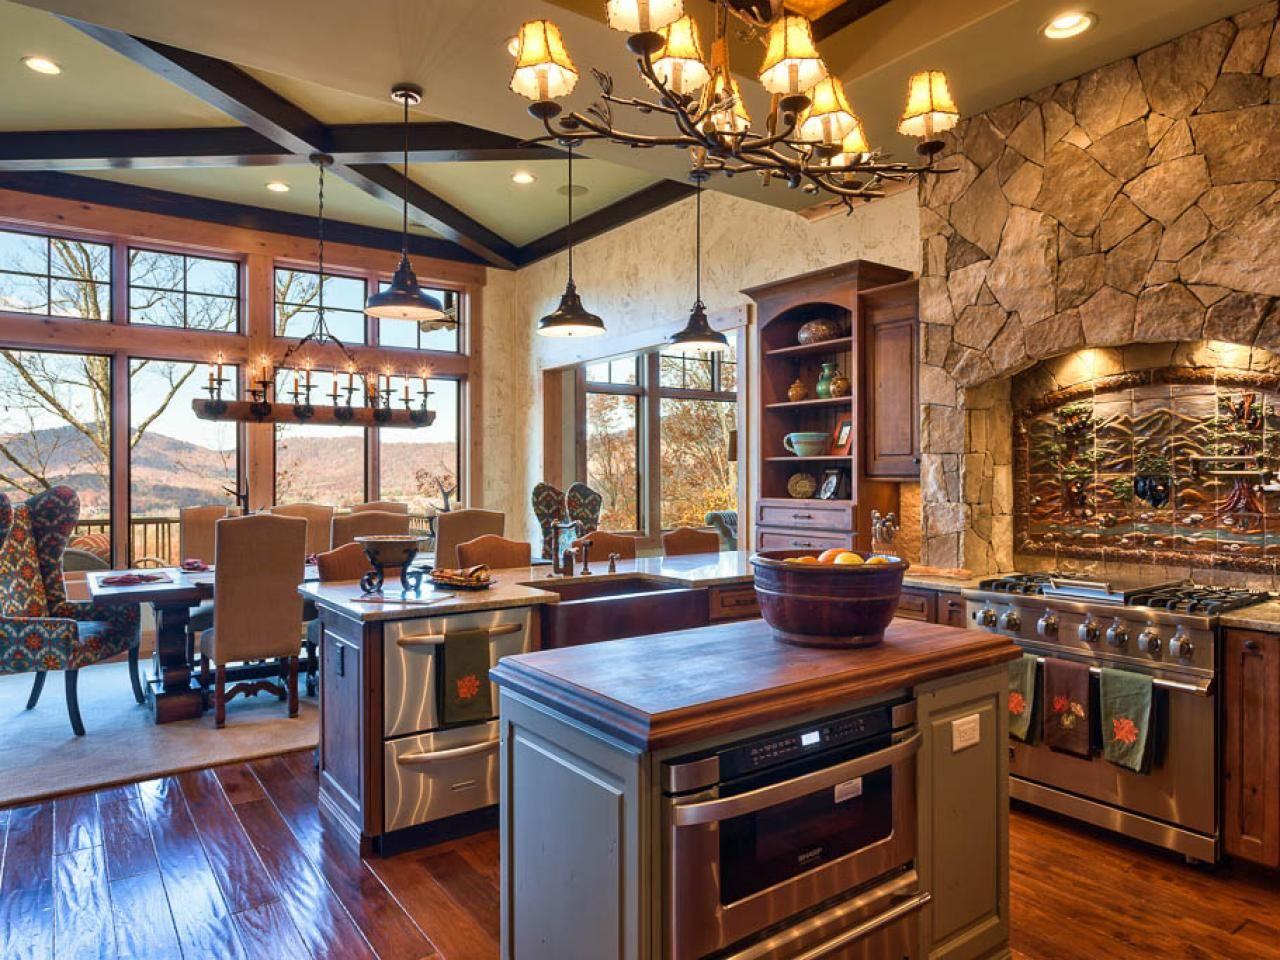 Rustic Stone Kitchen With Country Appeal | Dining area, Kitchens ...